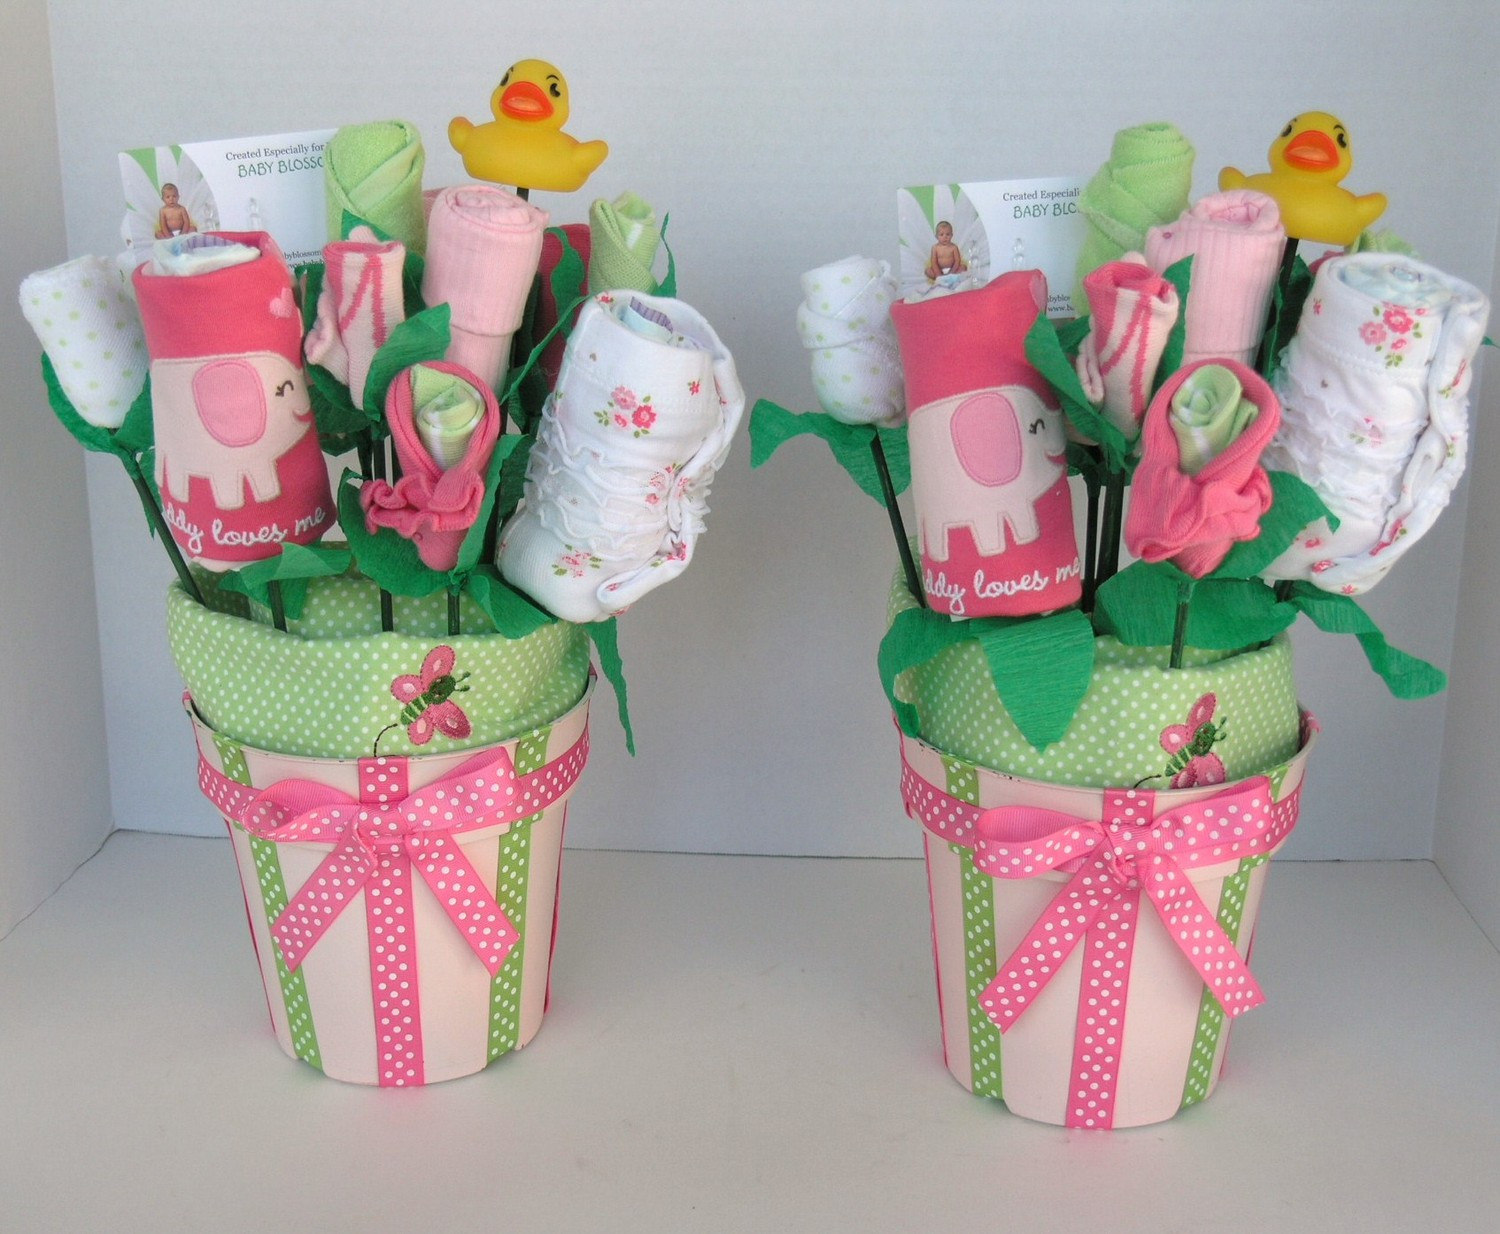 Best ideas about Newborn Baby Gift Ideas . Save or Pin Five Best DIY Baby Gifting Ideas for The Little Special Now.